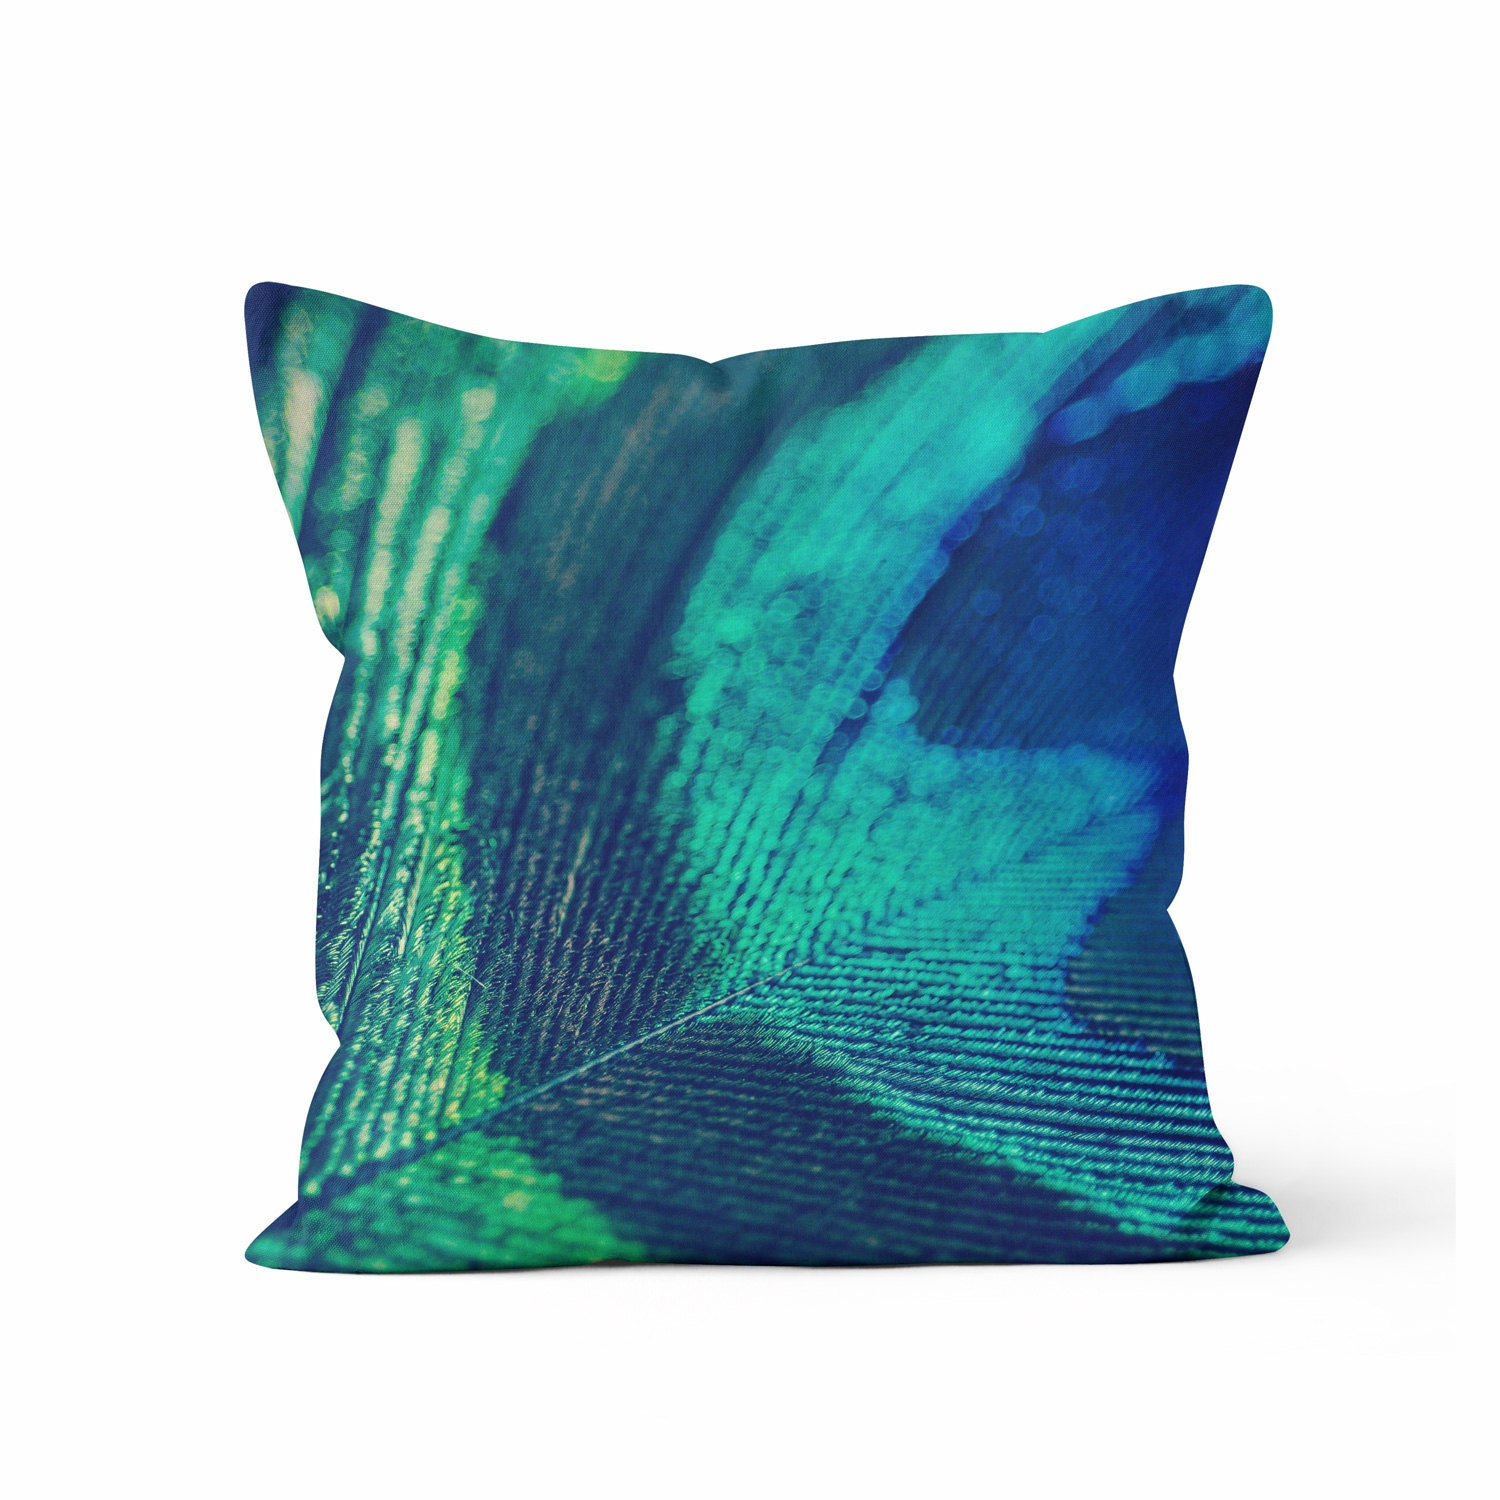 Throw Pillow Peacock : Blue Peacock Feather Decorative Throw Pillow Case Peacock